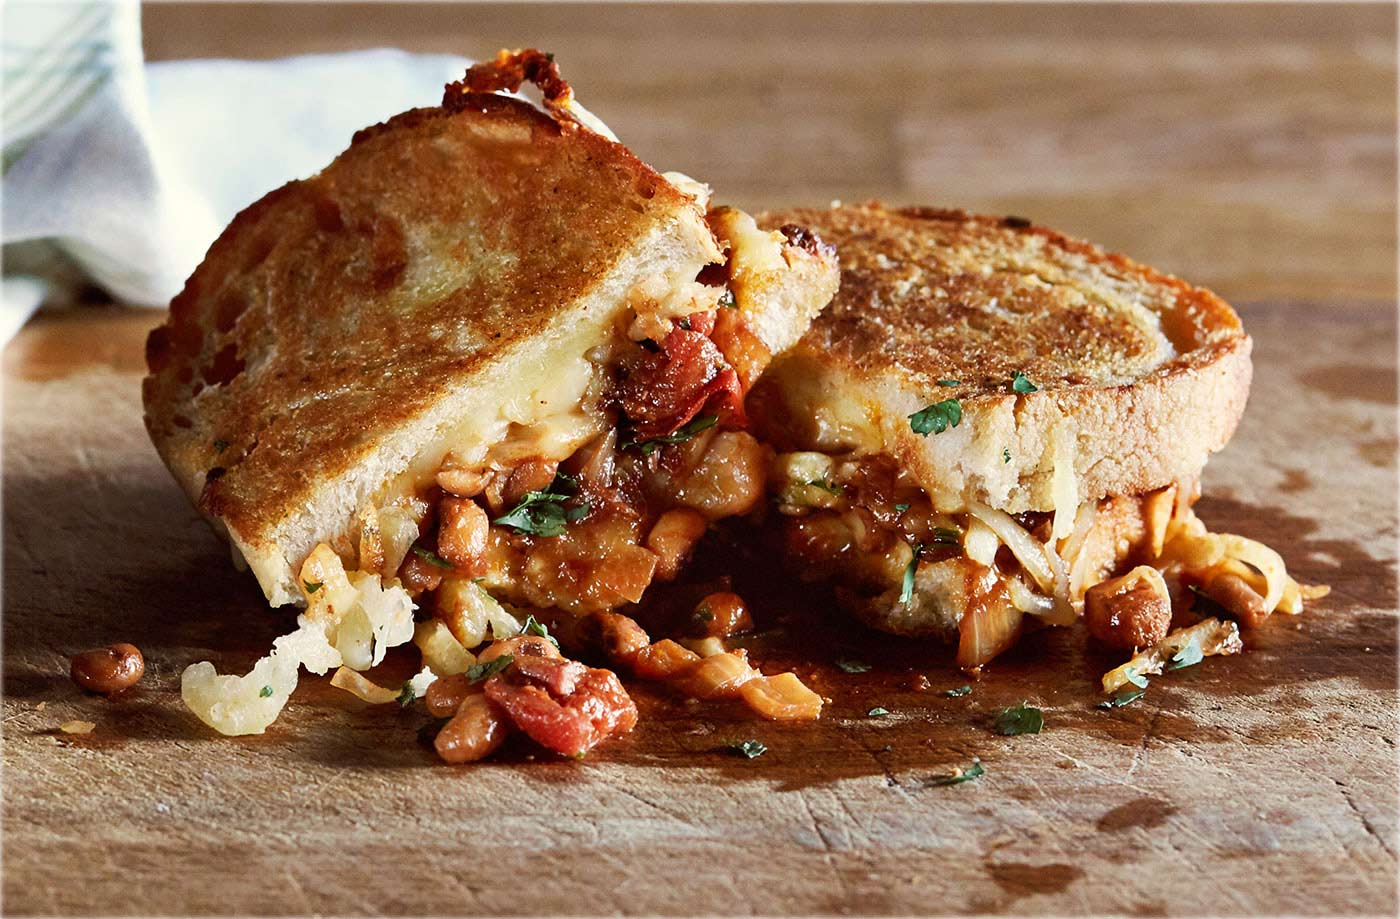 Boston bean Cheddar cheese toastie recipe